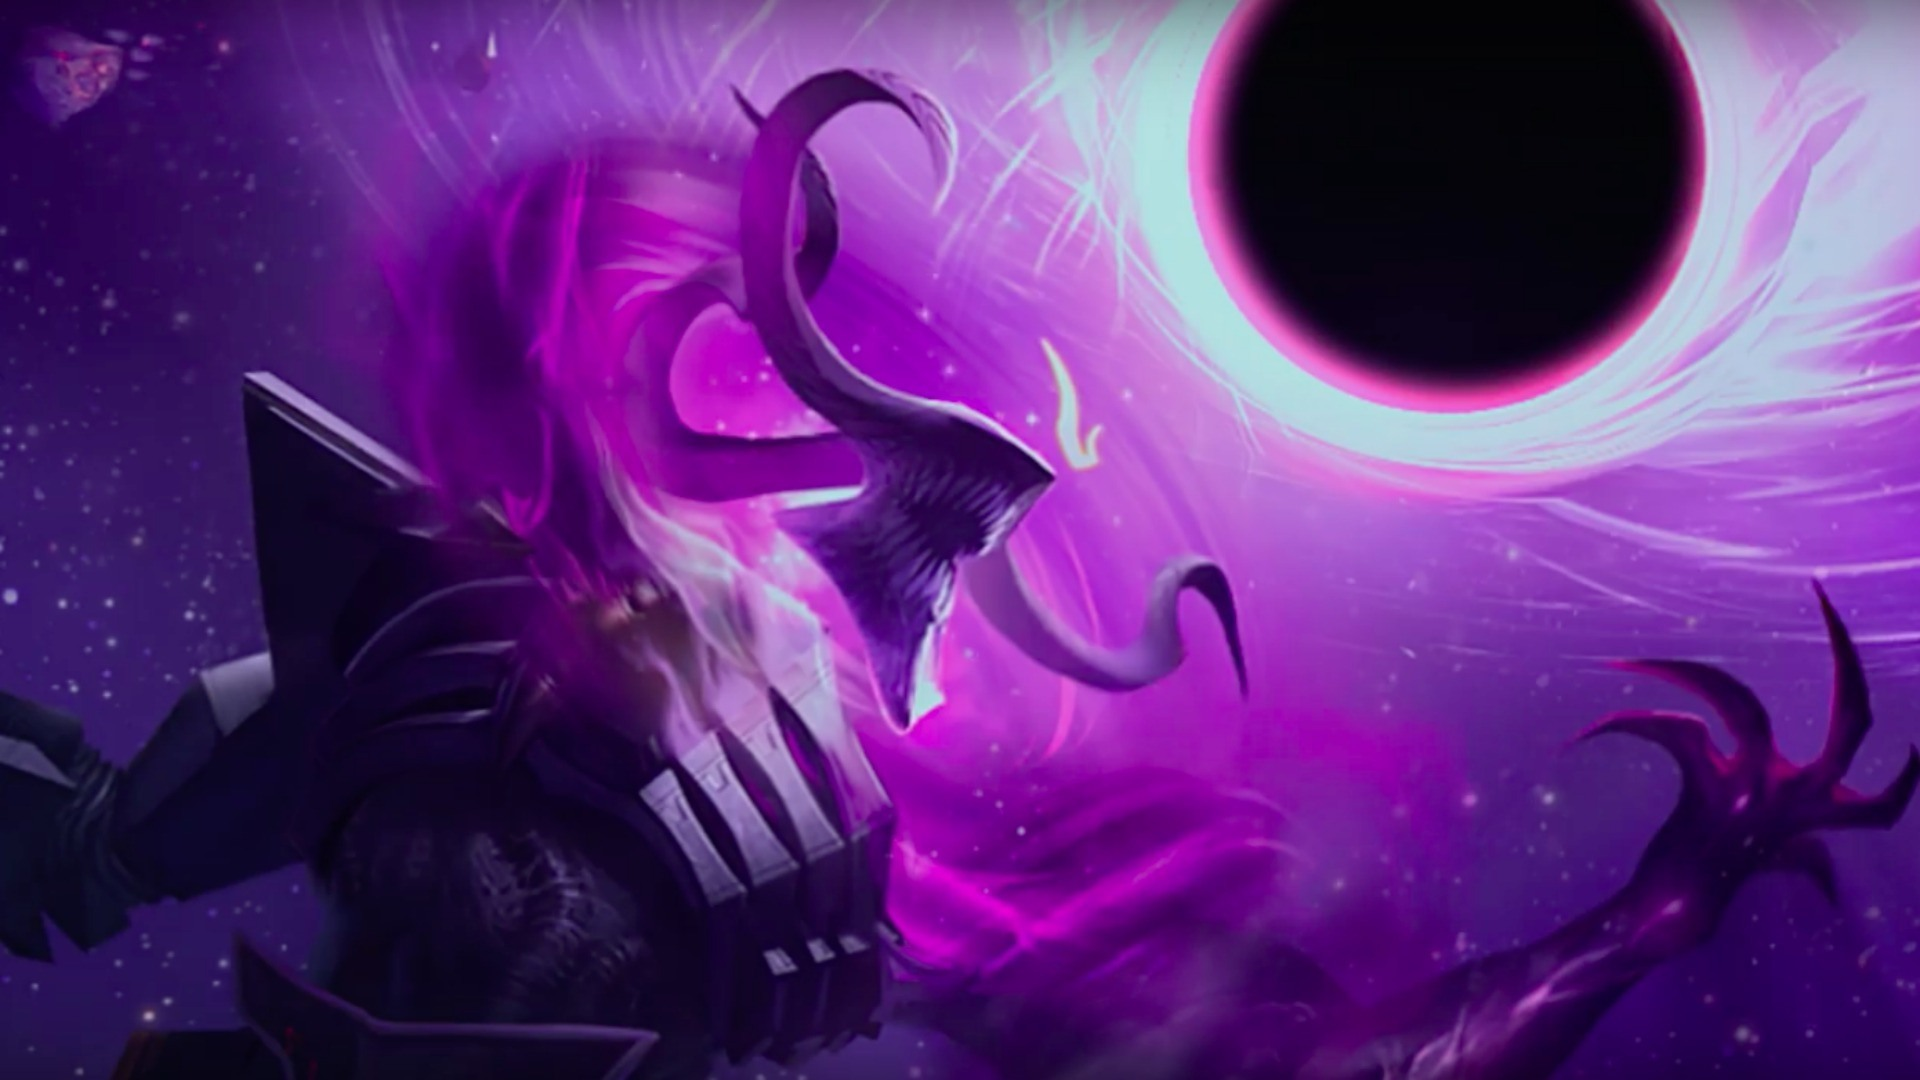 League Of Legends Thresh Dark Star Wallpapers Widescreen Is Cool Wallpapers